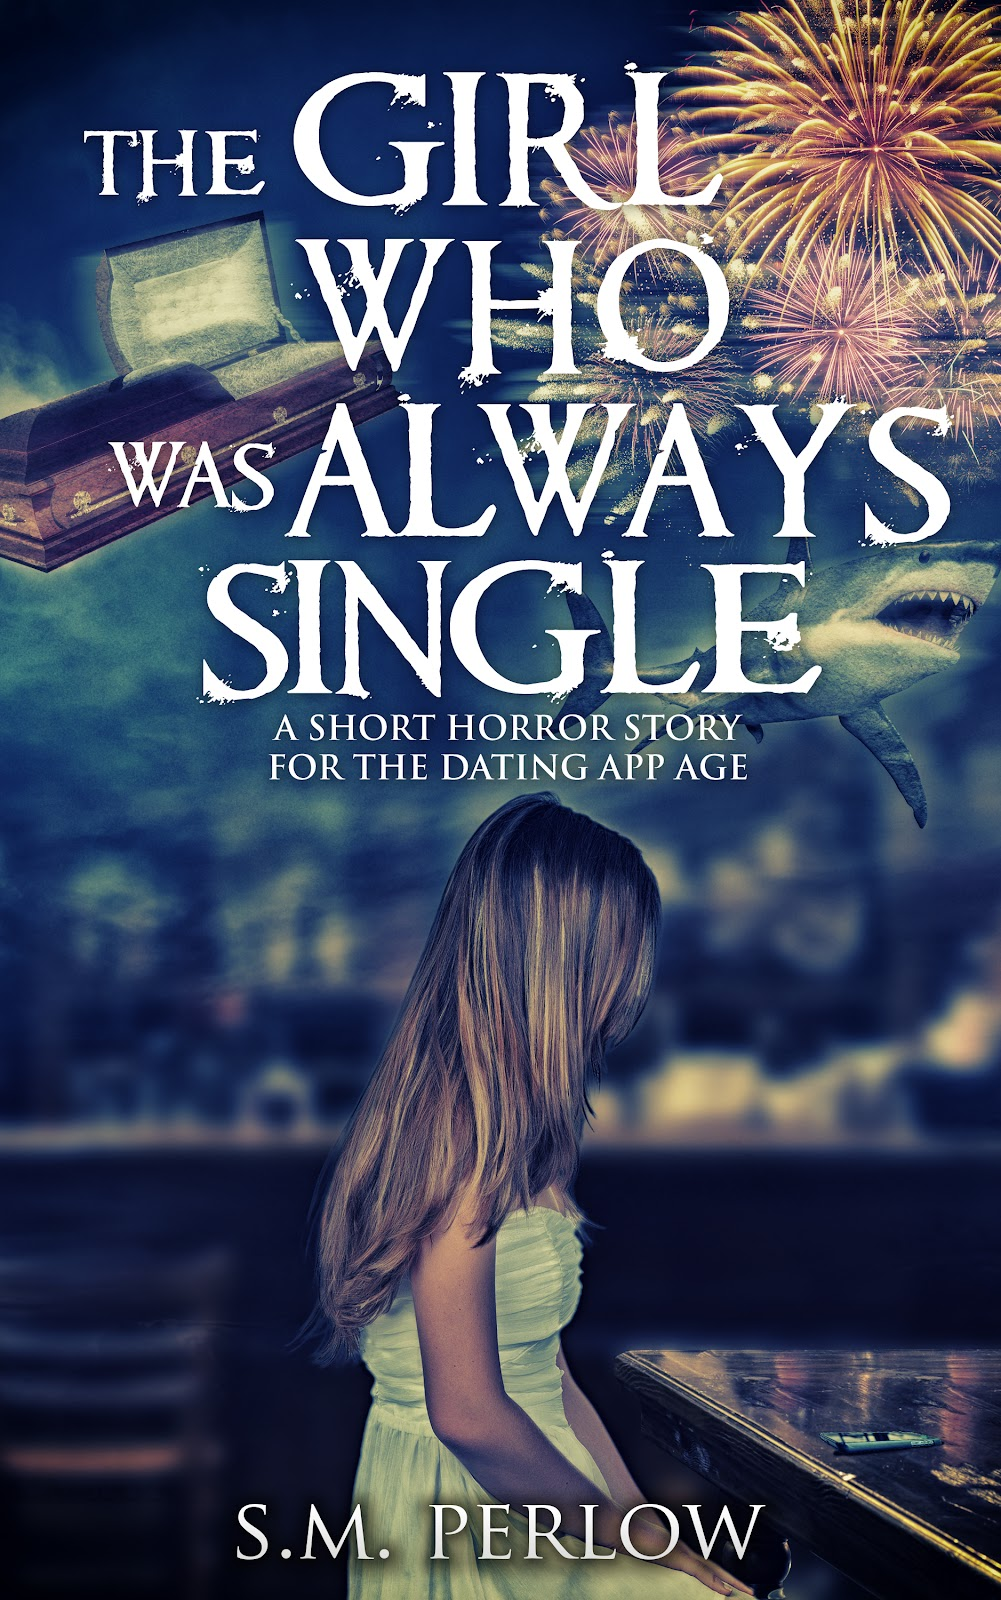 The-Girl-Who-Was-Always-Single-high_resolution.jpg